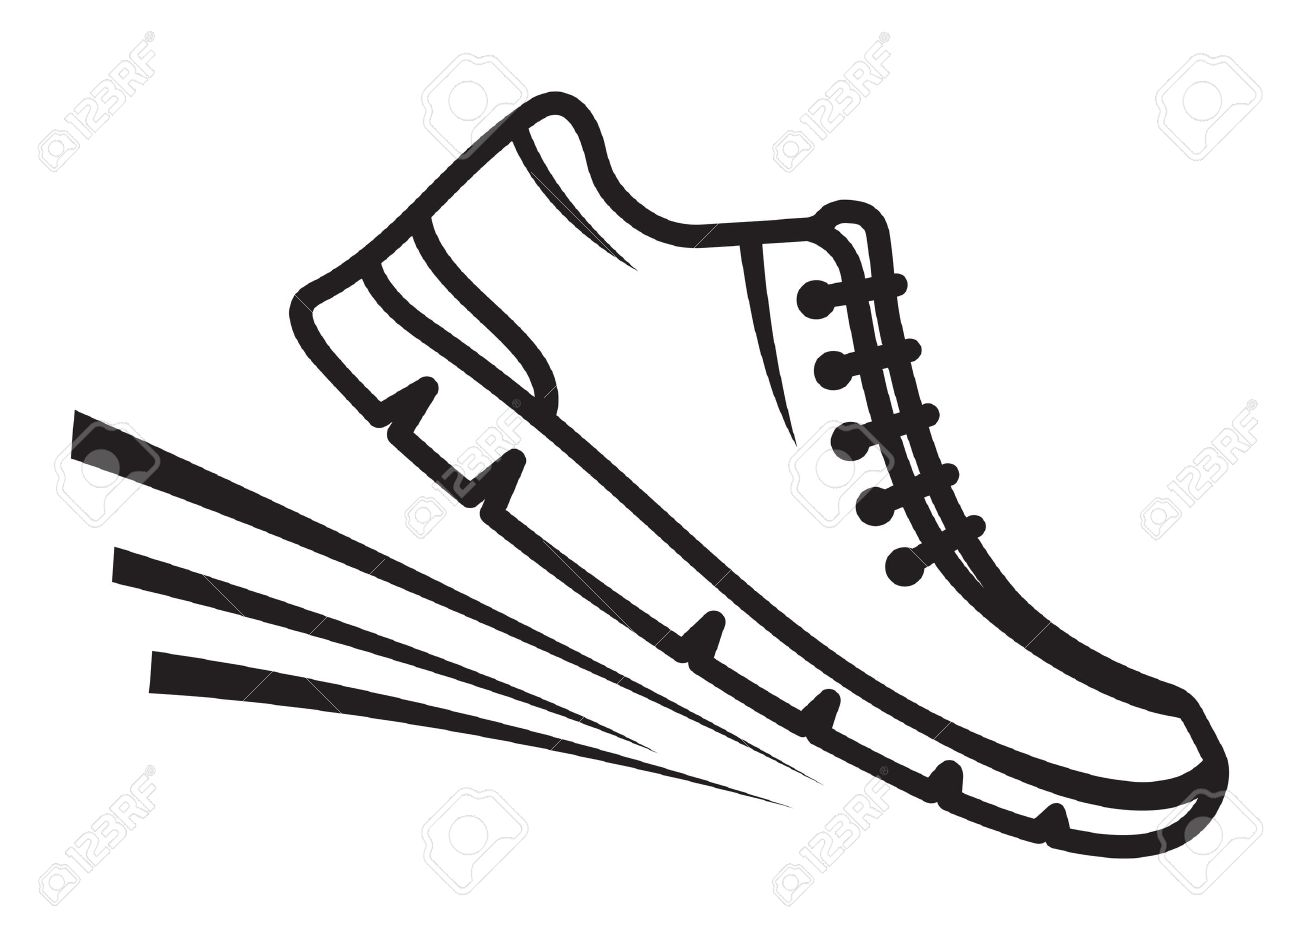 Running shoes icons - 38127618